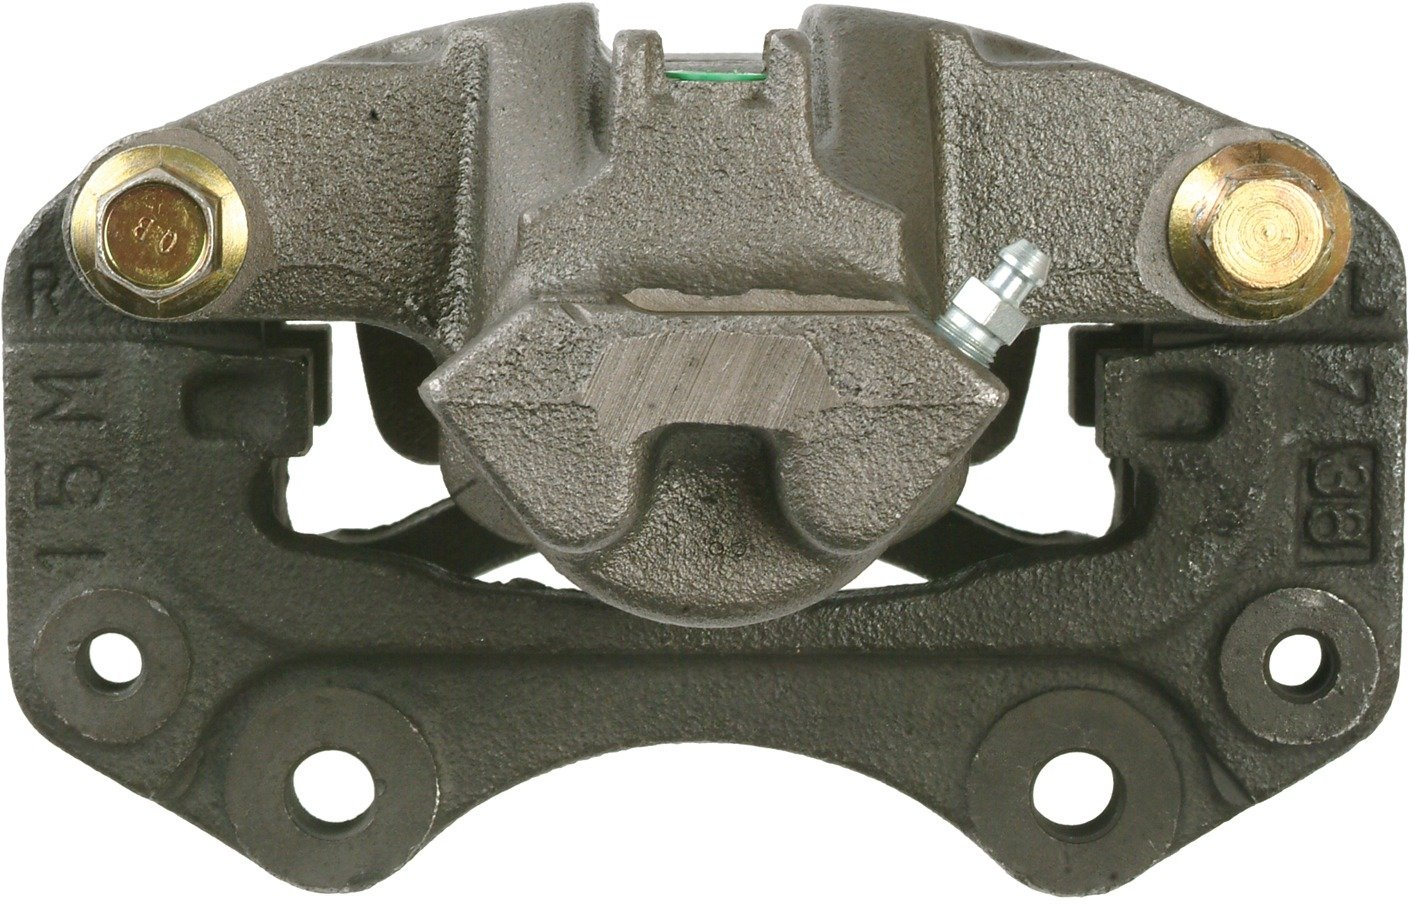 Cardone 18-B8031 Remanufactured Domestic Friction Ready (Unloaded) Brake Caliper by Cardone